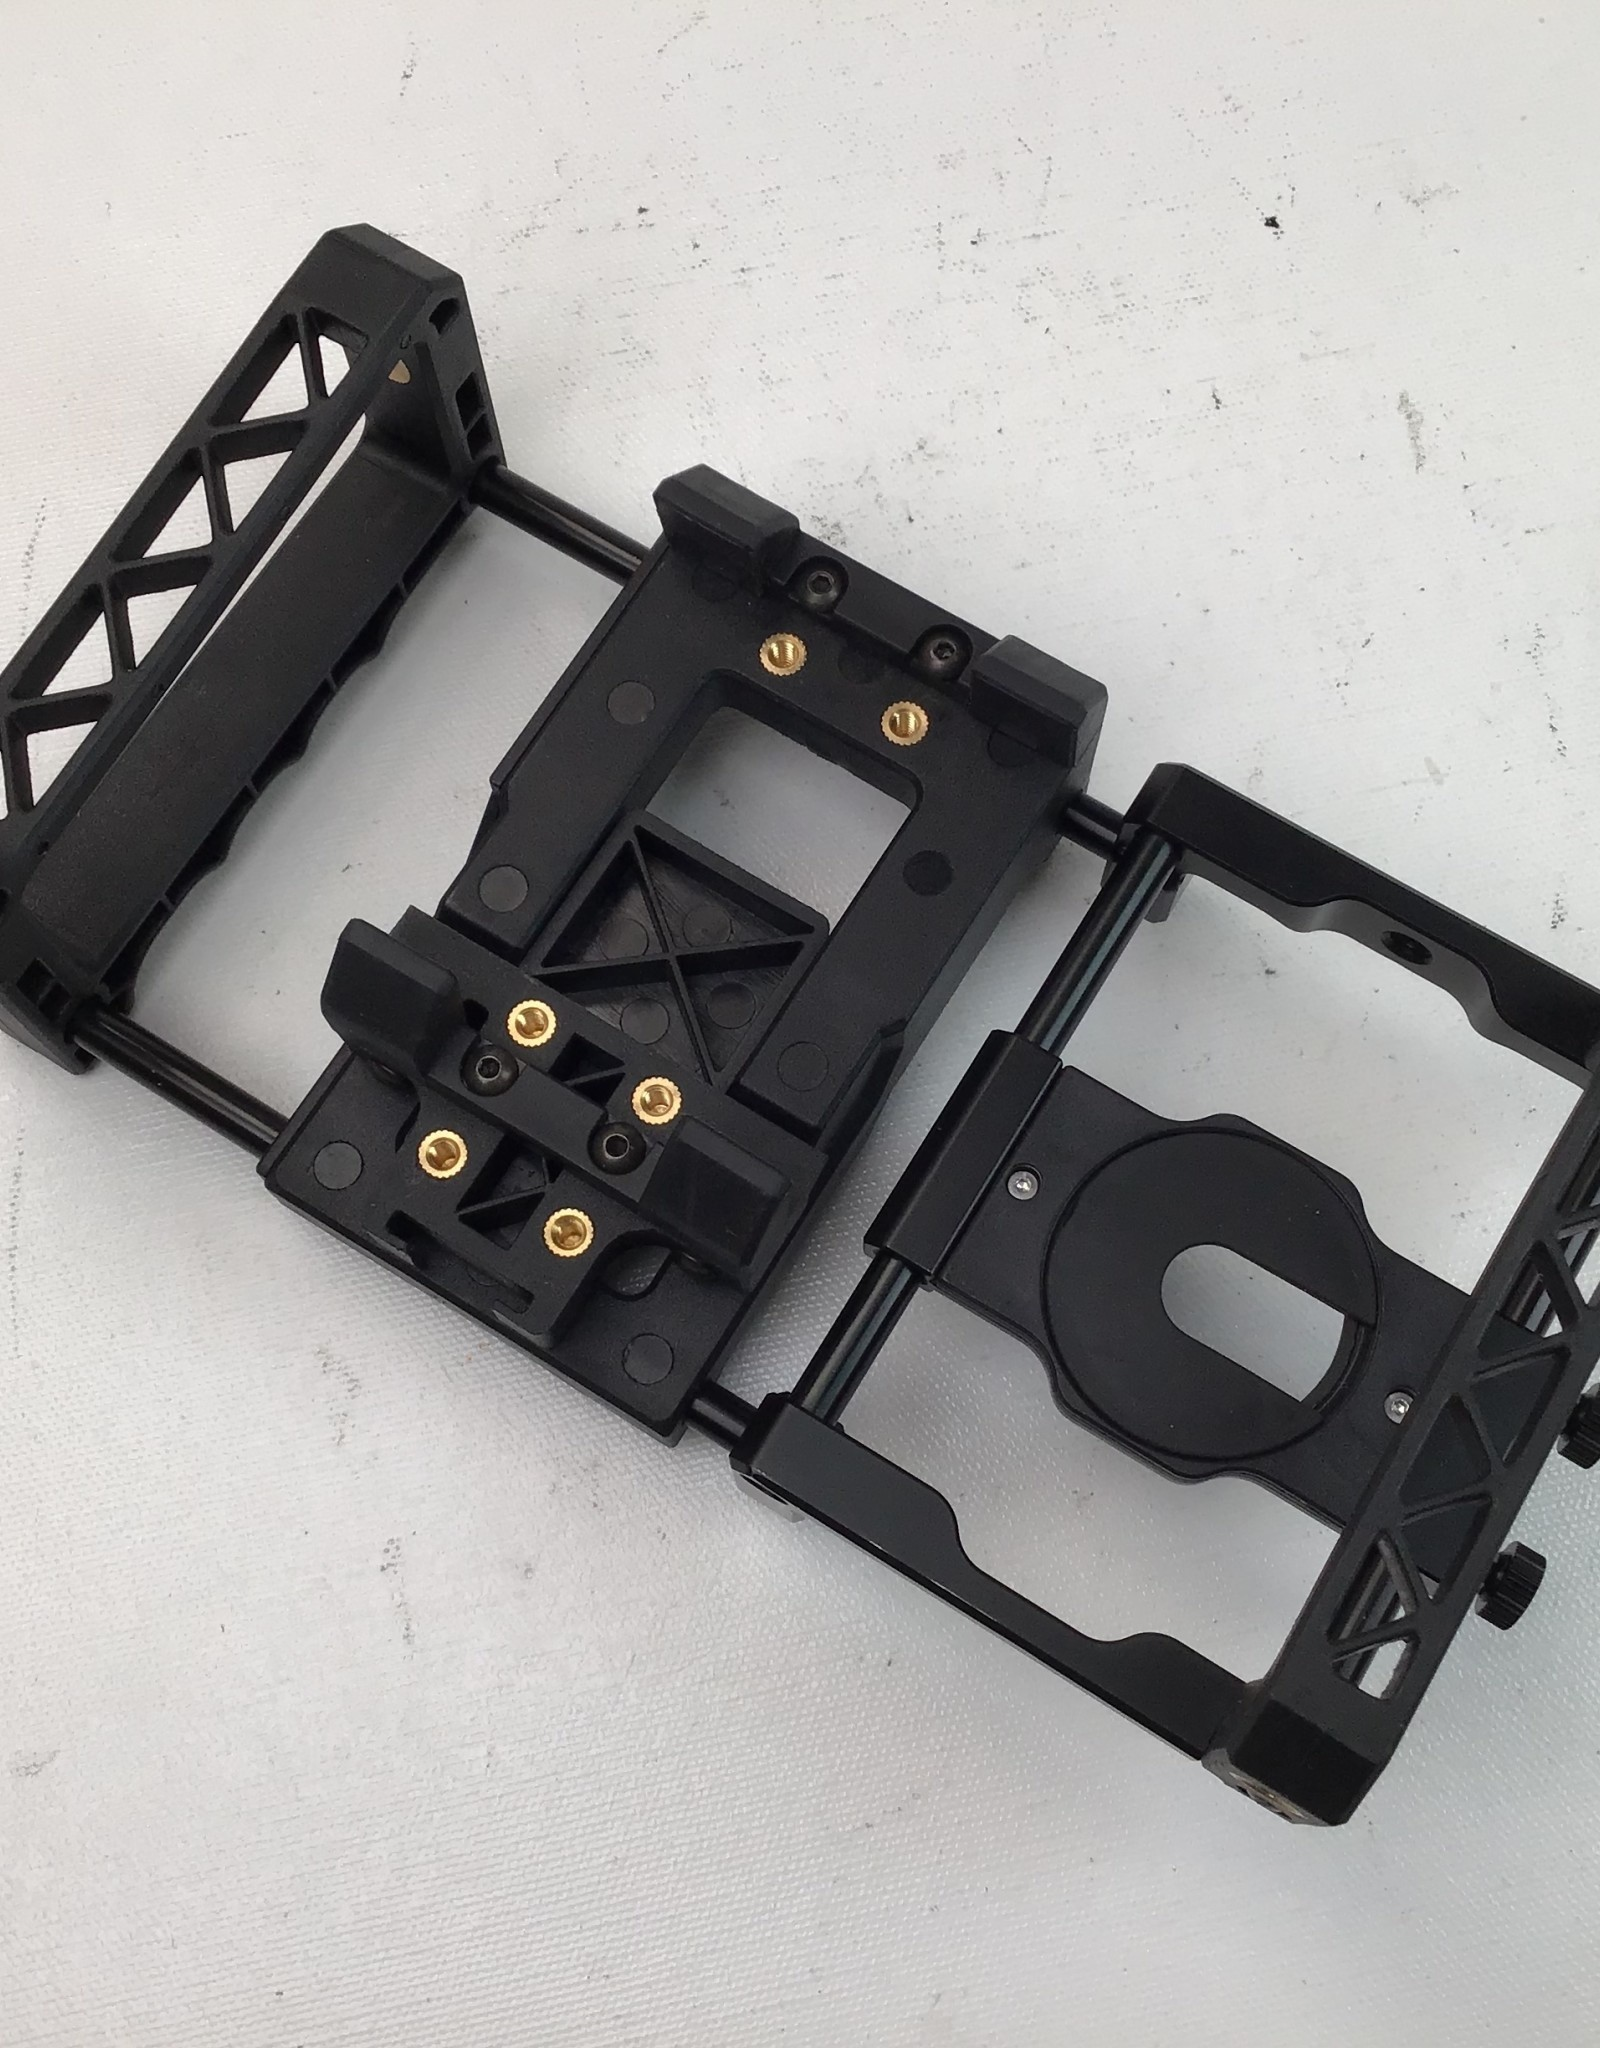 BeastGrip Mobile Cage for Phones Used EX